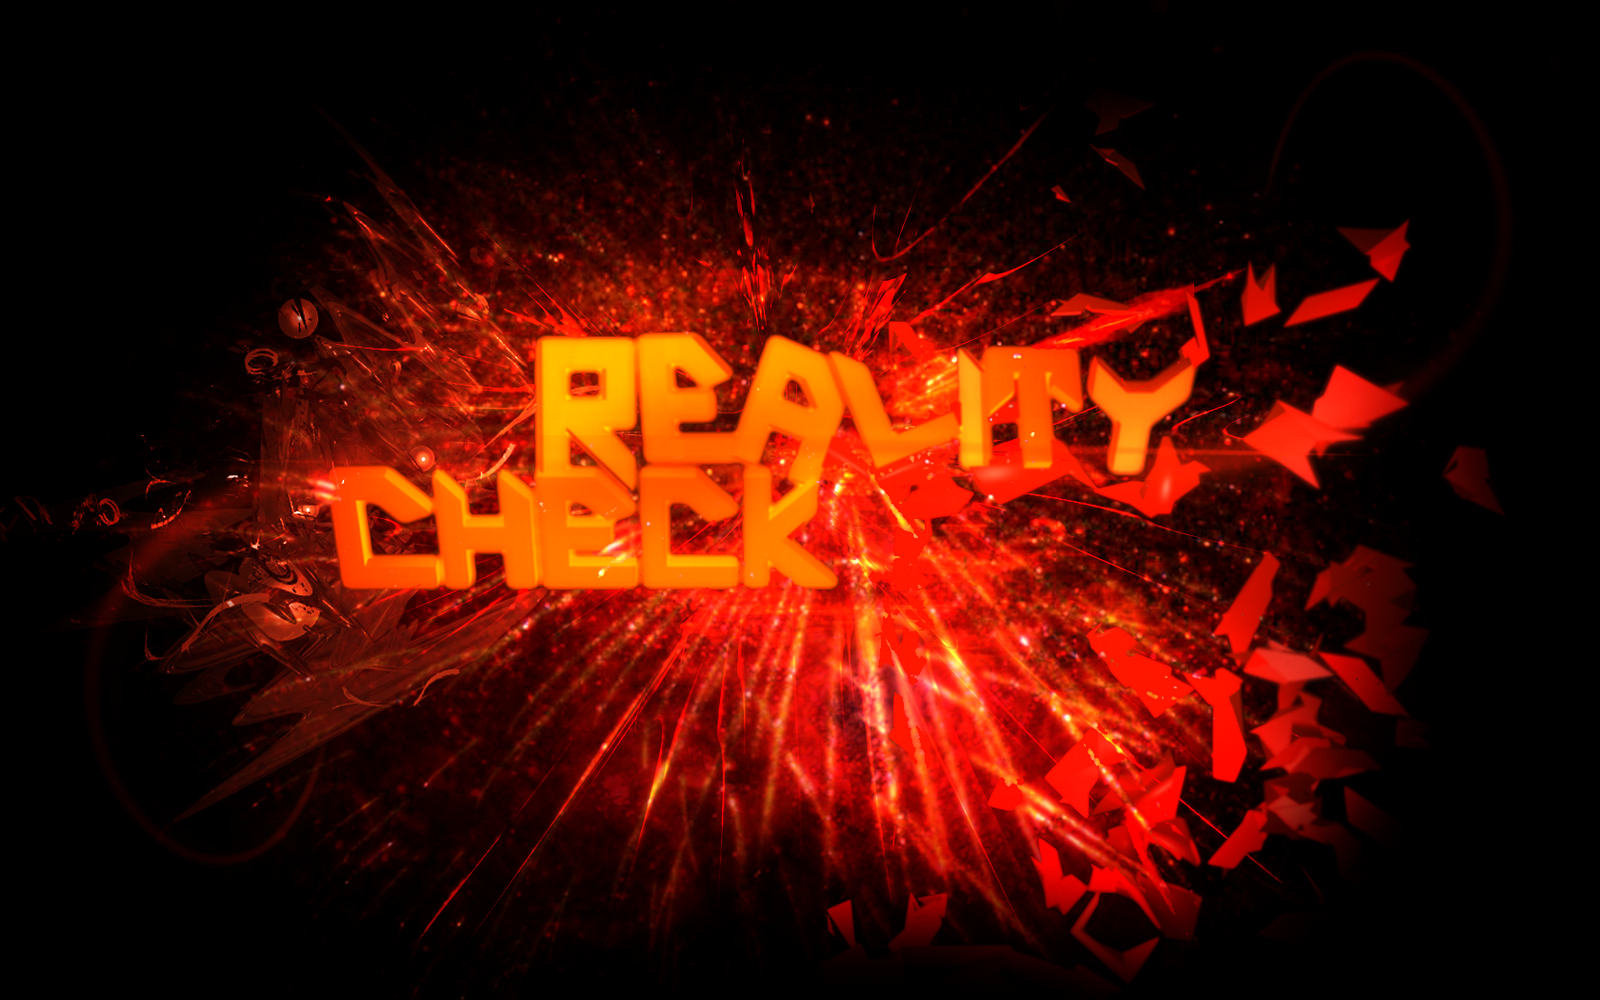 Reality Check Wallpaper by VoidDesigns on deviantART